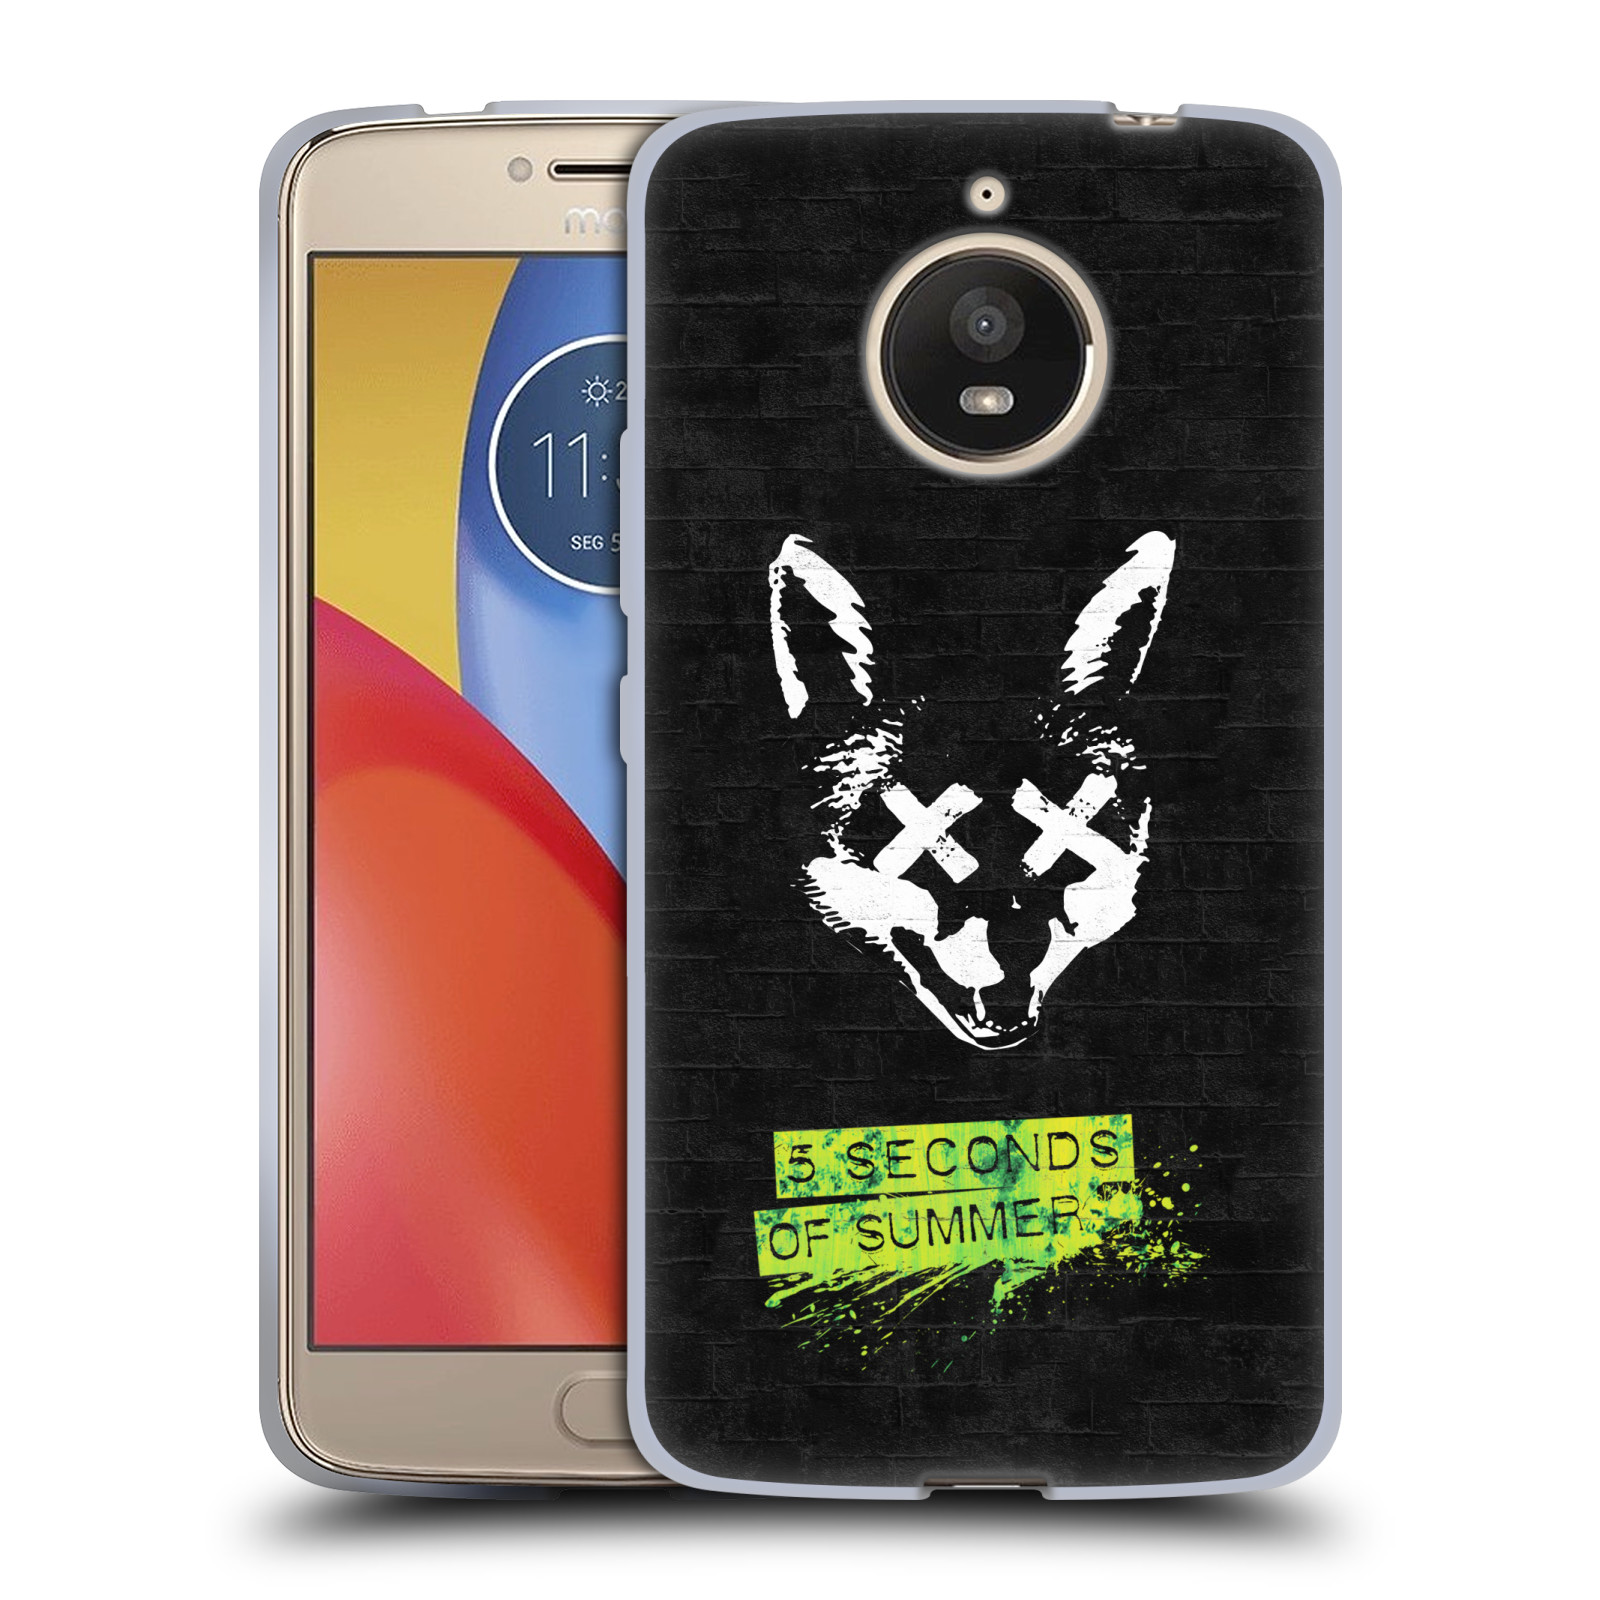 Silikonové pouzdro na mobil Lenovo Moto E4 Plus - Head Case - 5 Seconds of Summer - Fox